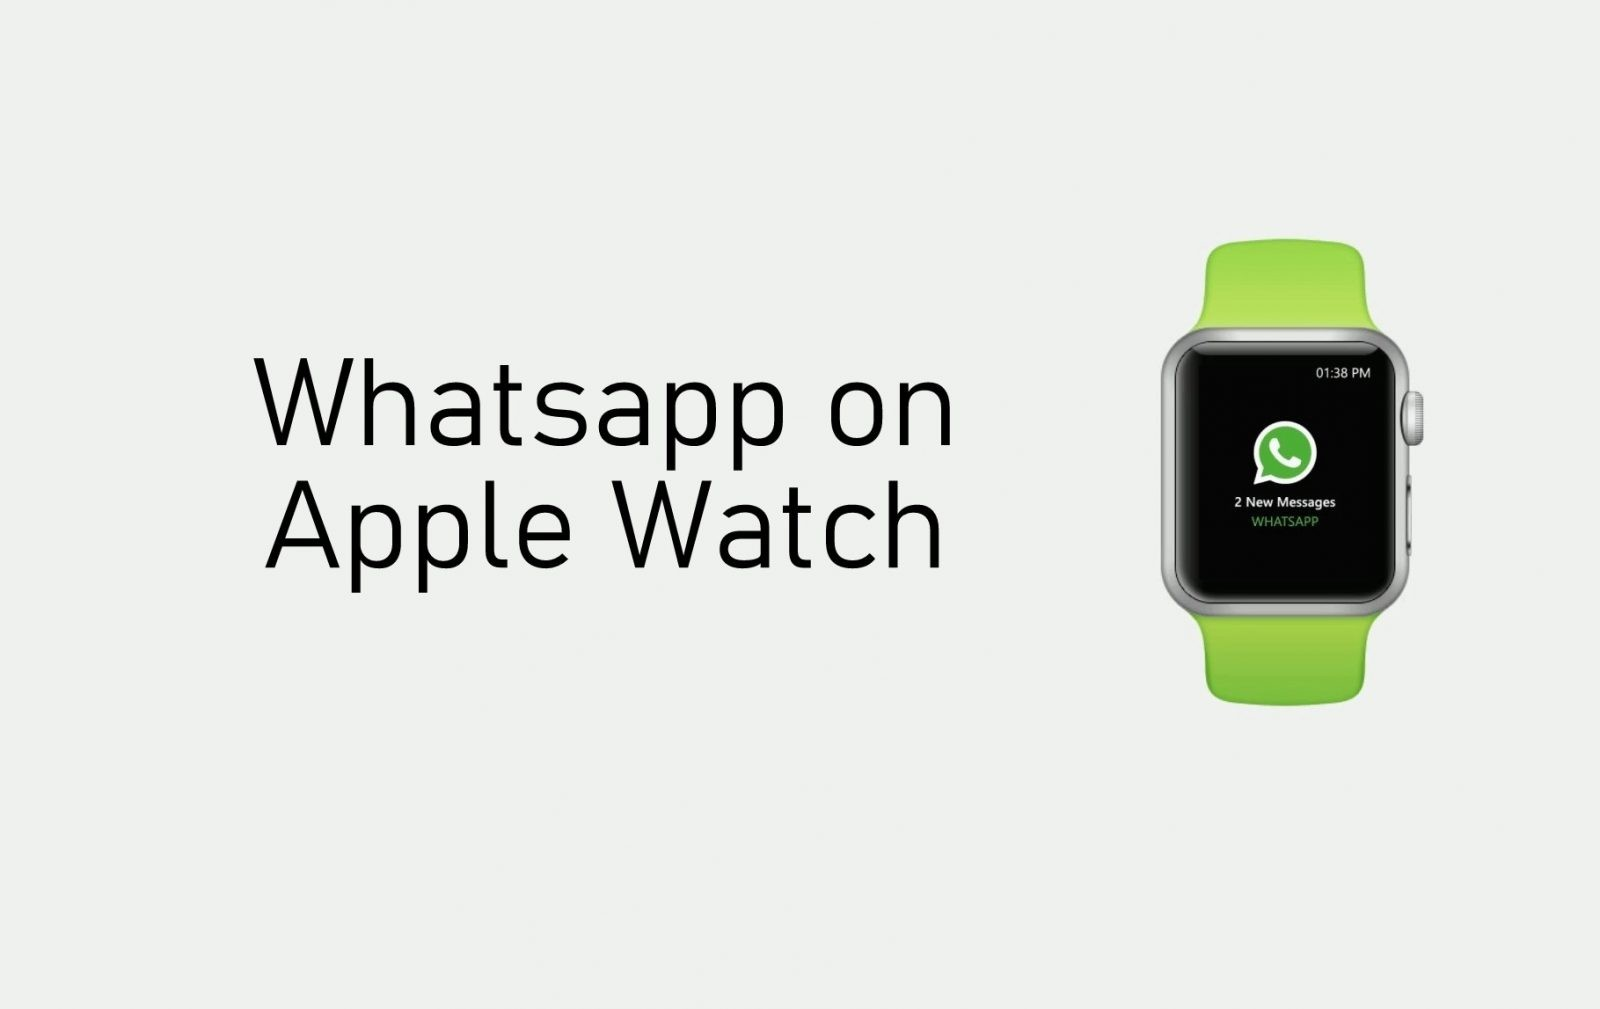 How to Use WhatsApp on Apple Watch [Two Methods]